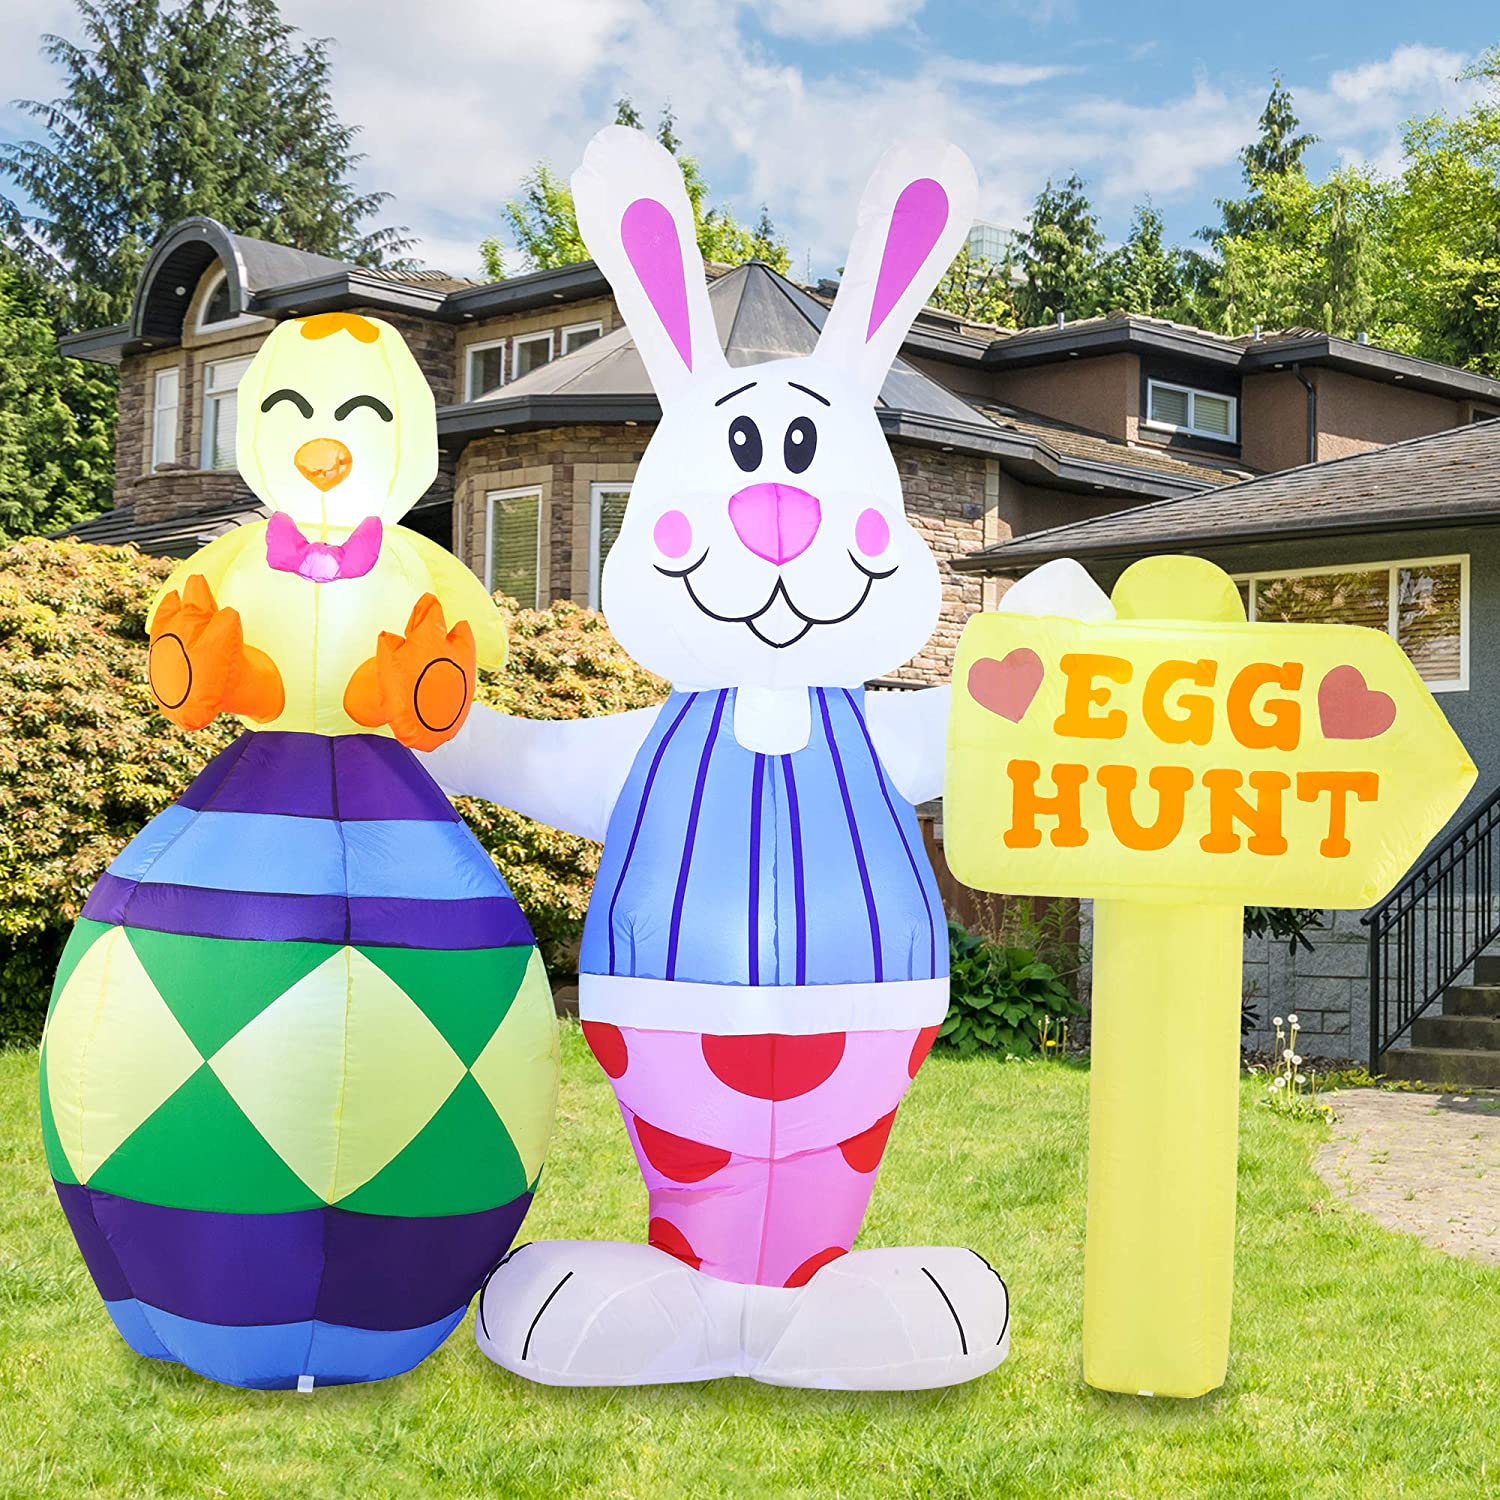 Joiedomi Easter Inflatable Outdoor Decorations 6 ft Tall Bunny with Sign Inflatable with Build-in LEDs Blow Up Inflatables for Easter Holiday Party Indoor, Outdoor, Yard, Garden, Lawn Decor.